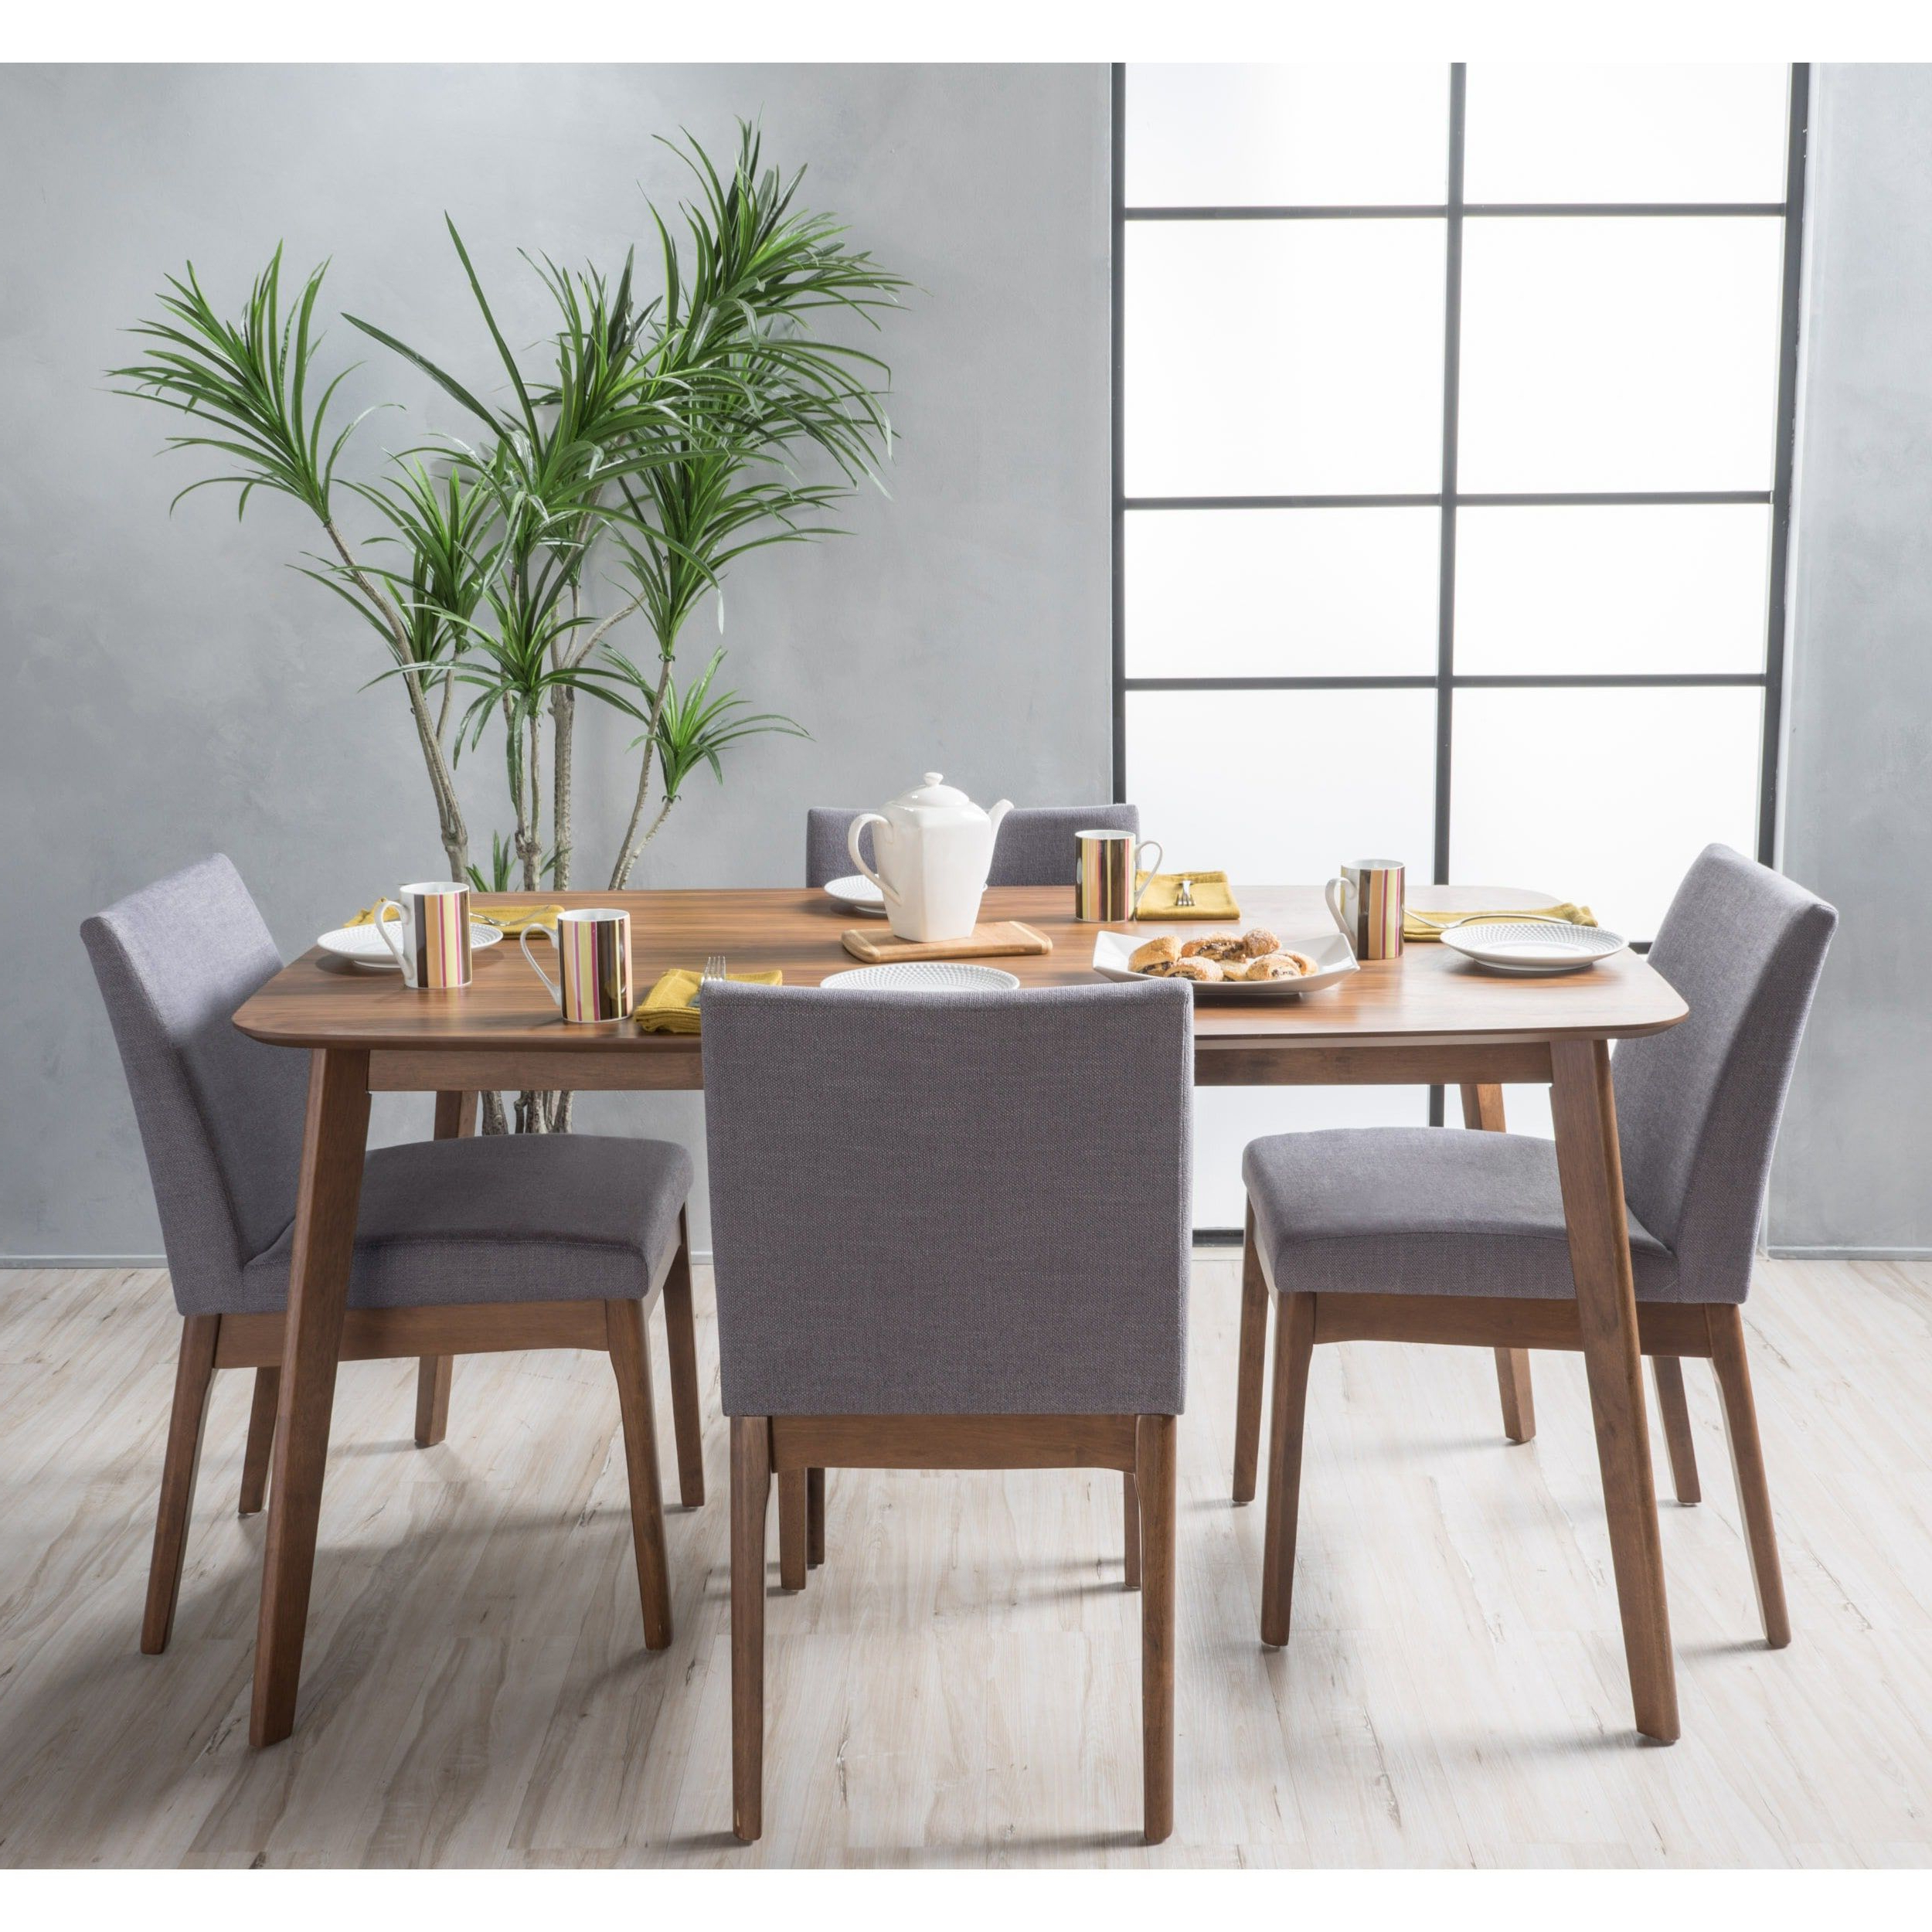 Carson Carrington Kotka Mid Century 5 Piece Dining Set (Walnut With Most Current Tavarez 5 Piece Dining Sets (View 8 of 25)